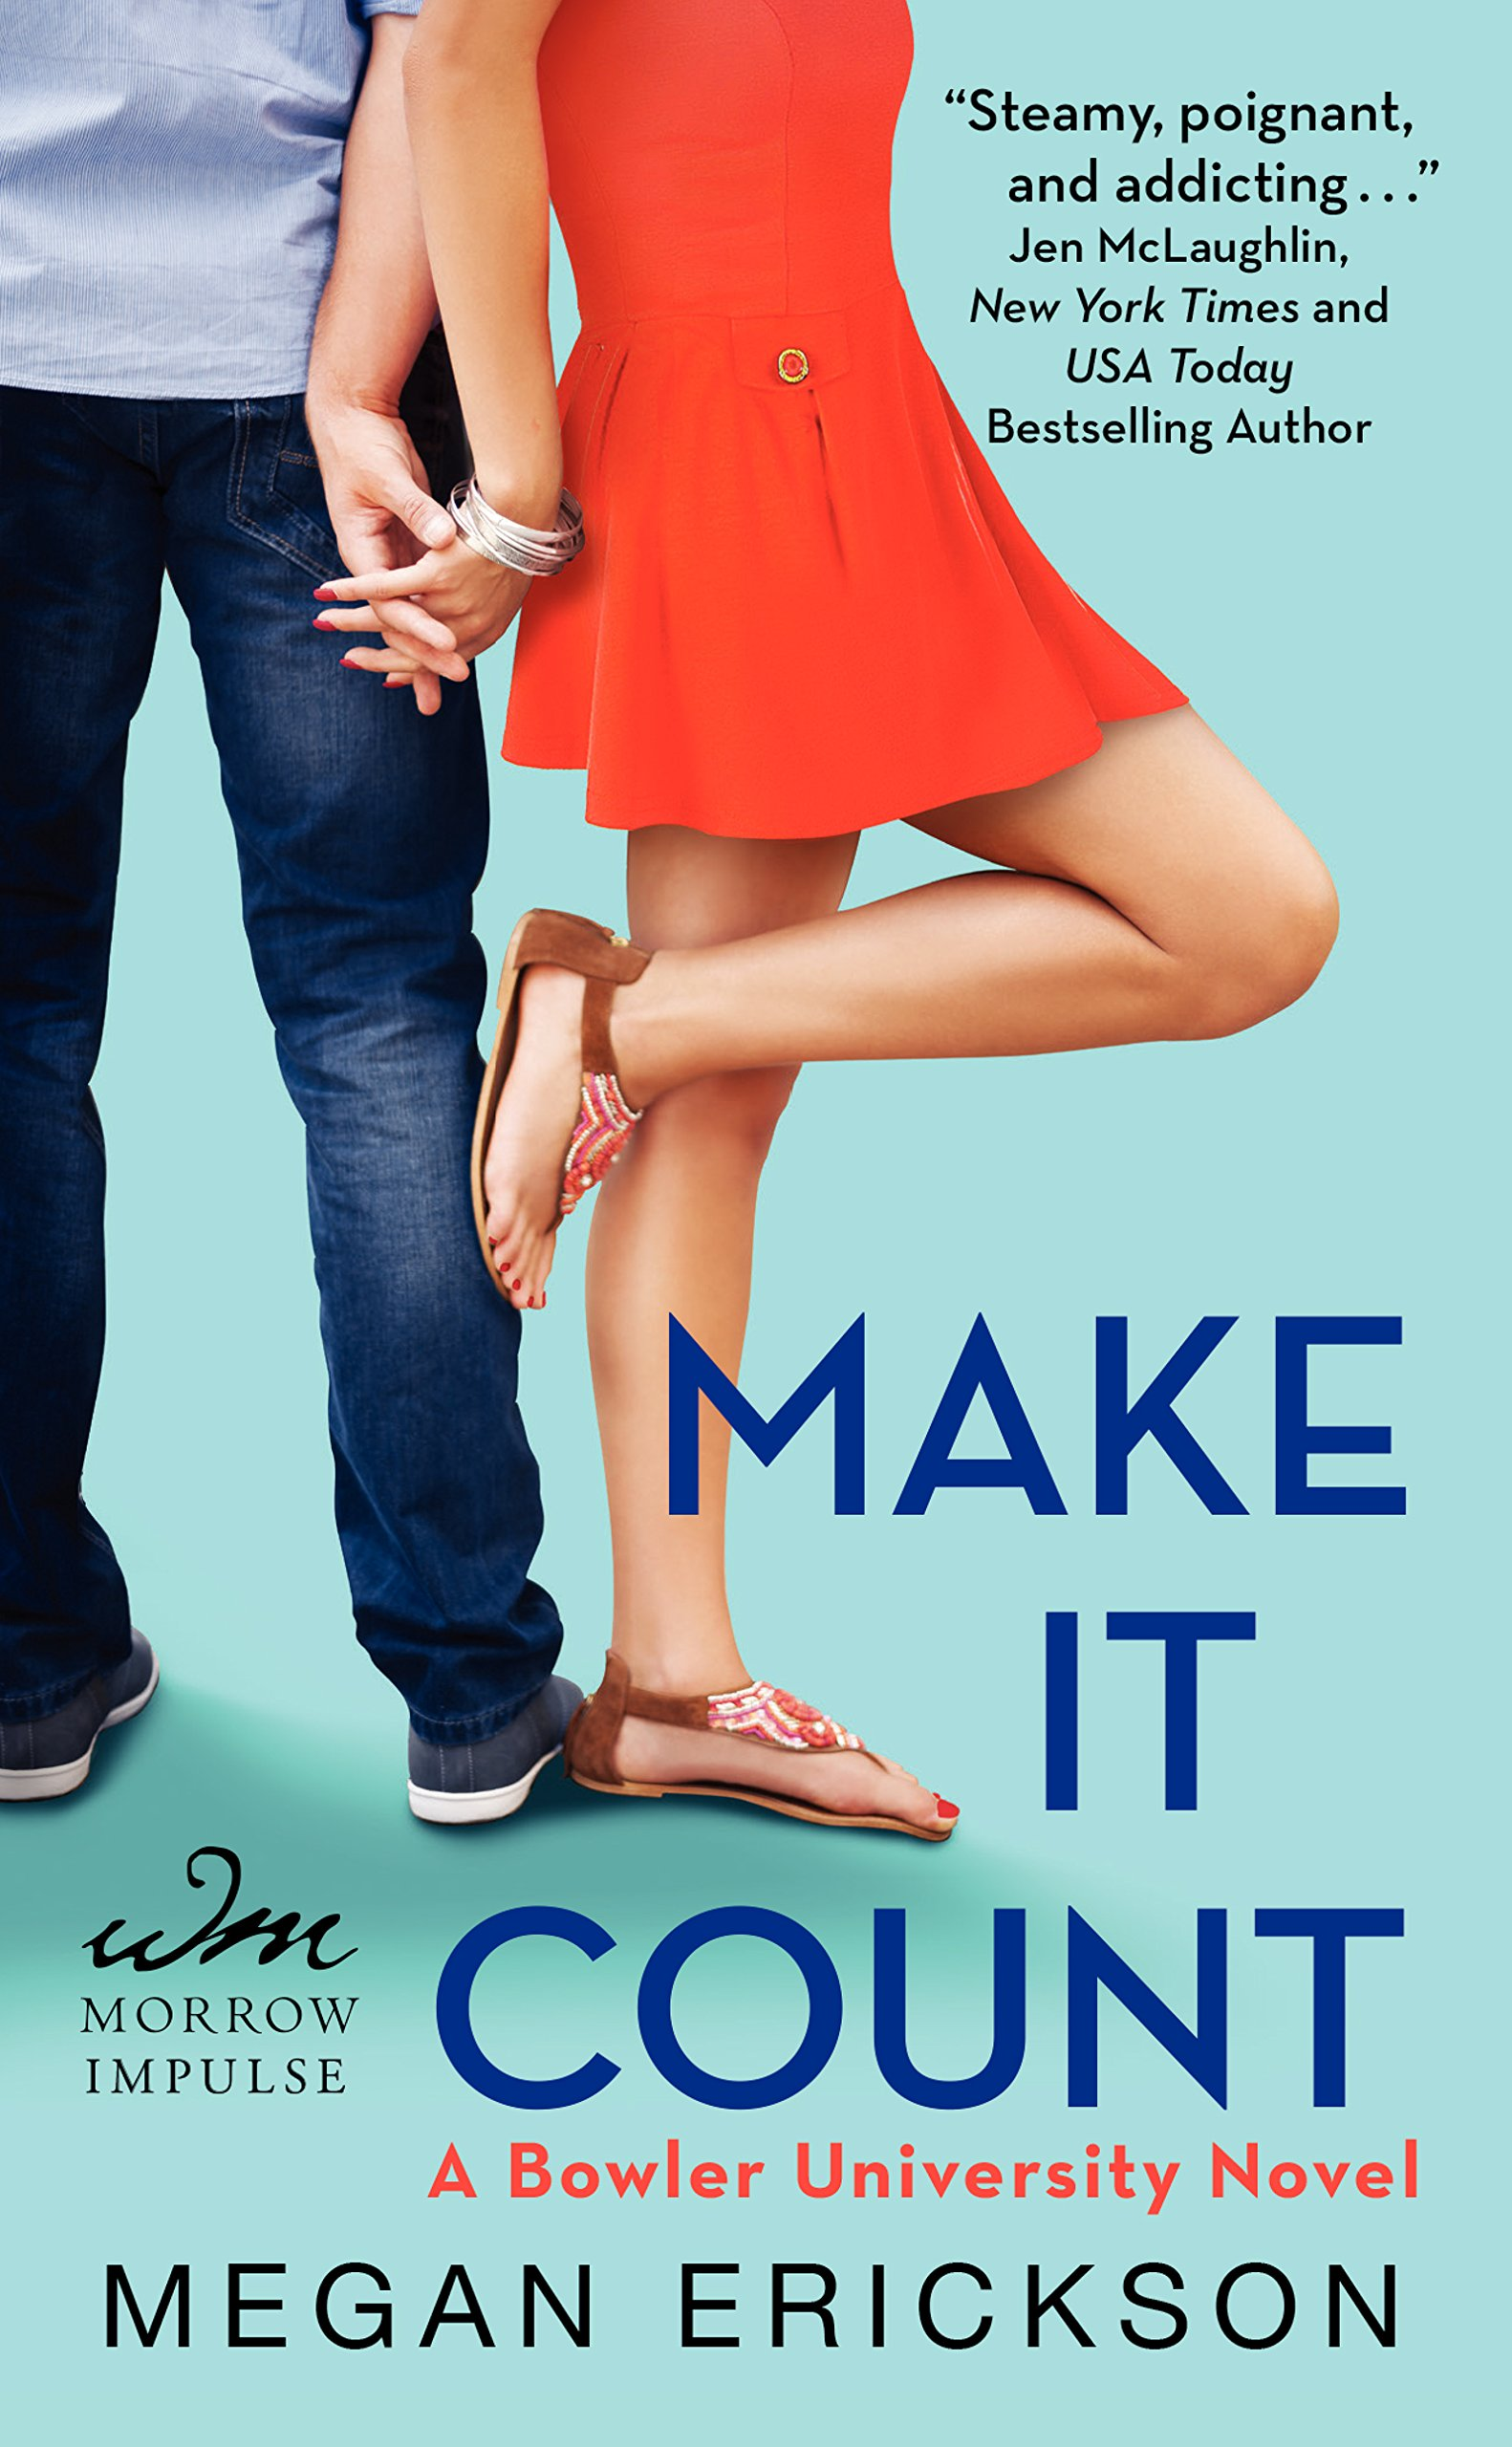 ERICKSON Megan - BROWLER UNIVERSITY tome 1 : Make it count 81%2BOGsElJ4L